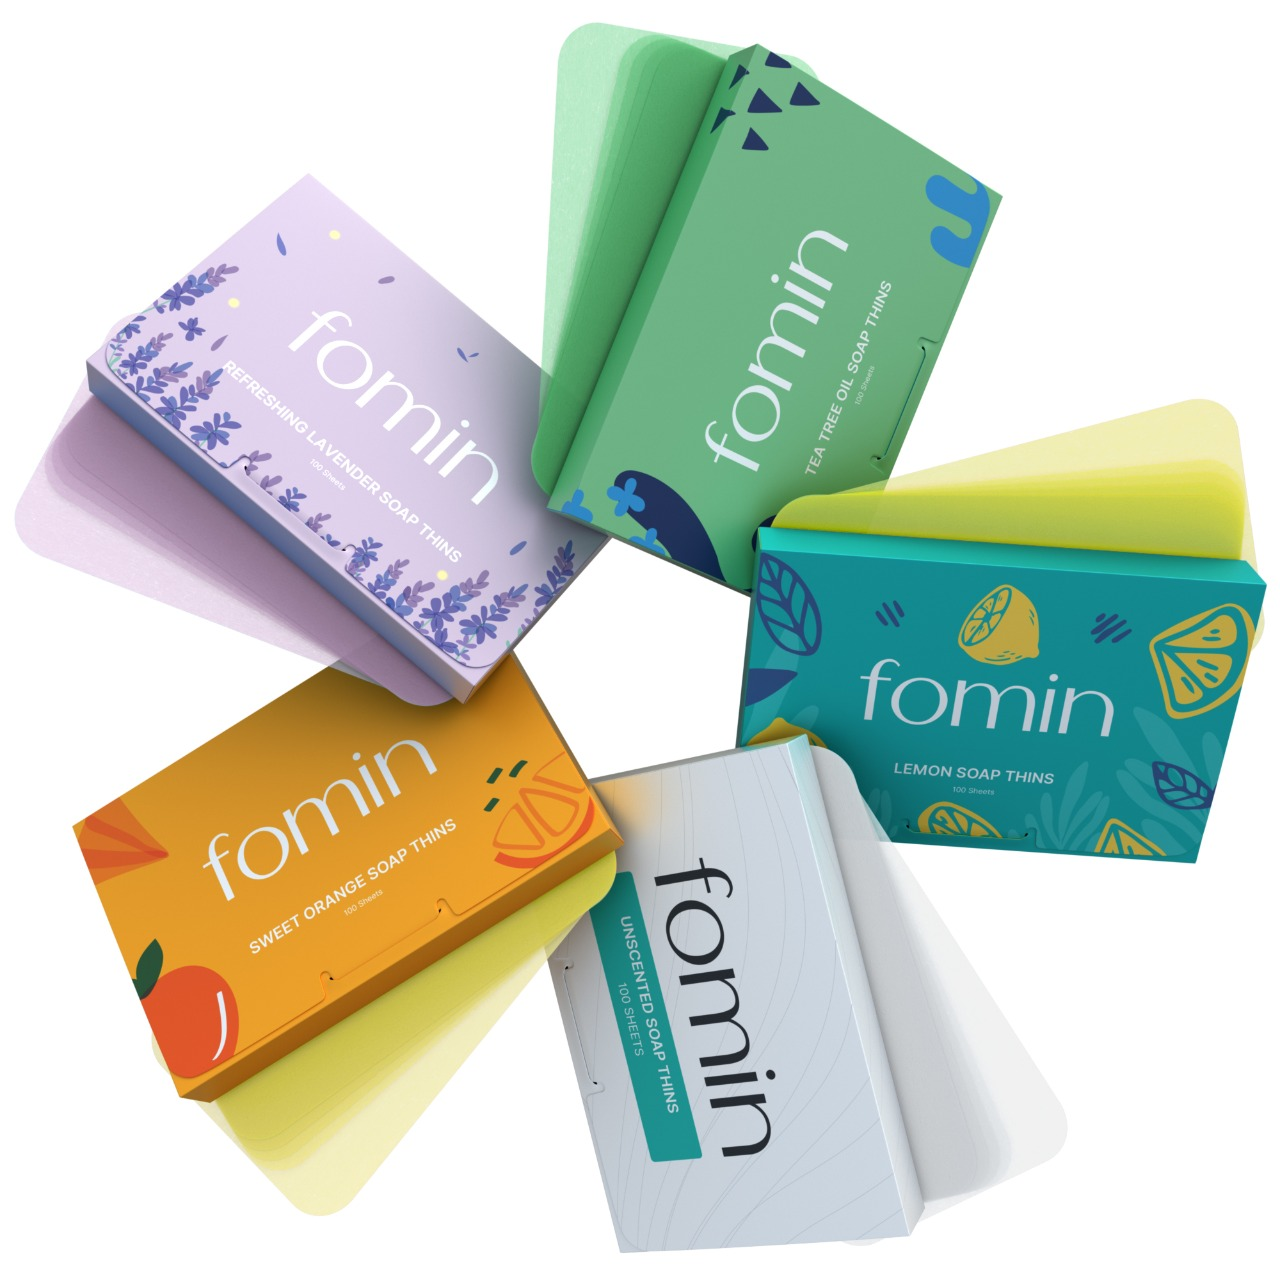 Fomin Soap is now offered Nationwide Through Mr. Checkout's Direct Store Delivery Distributors.